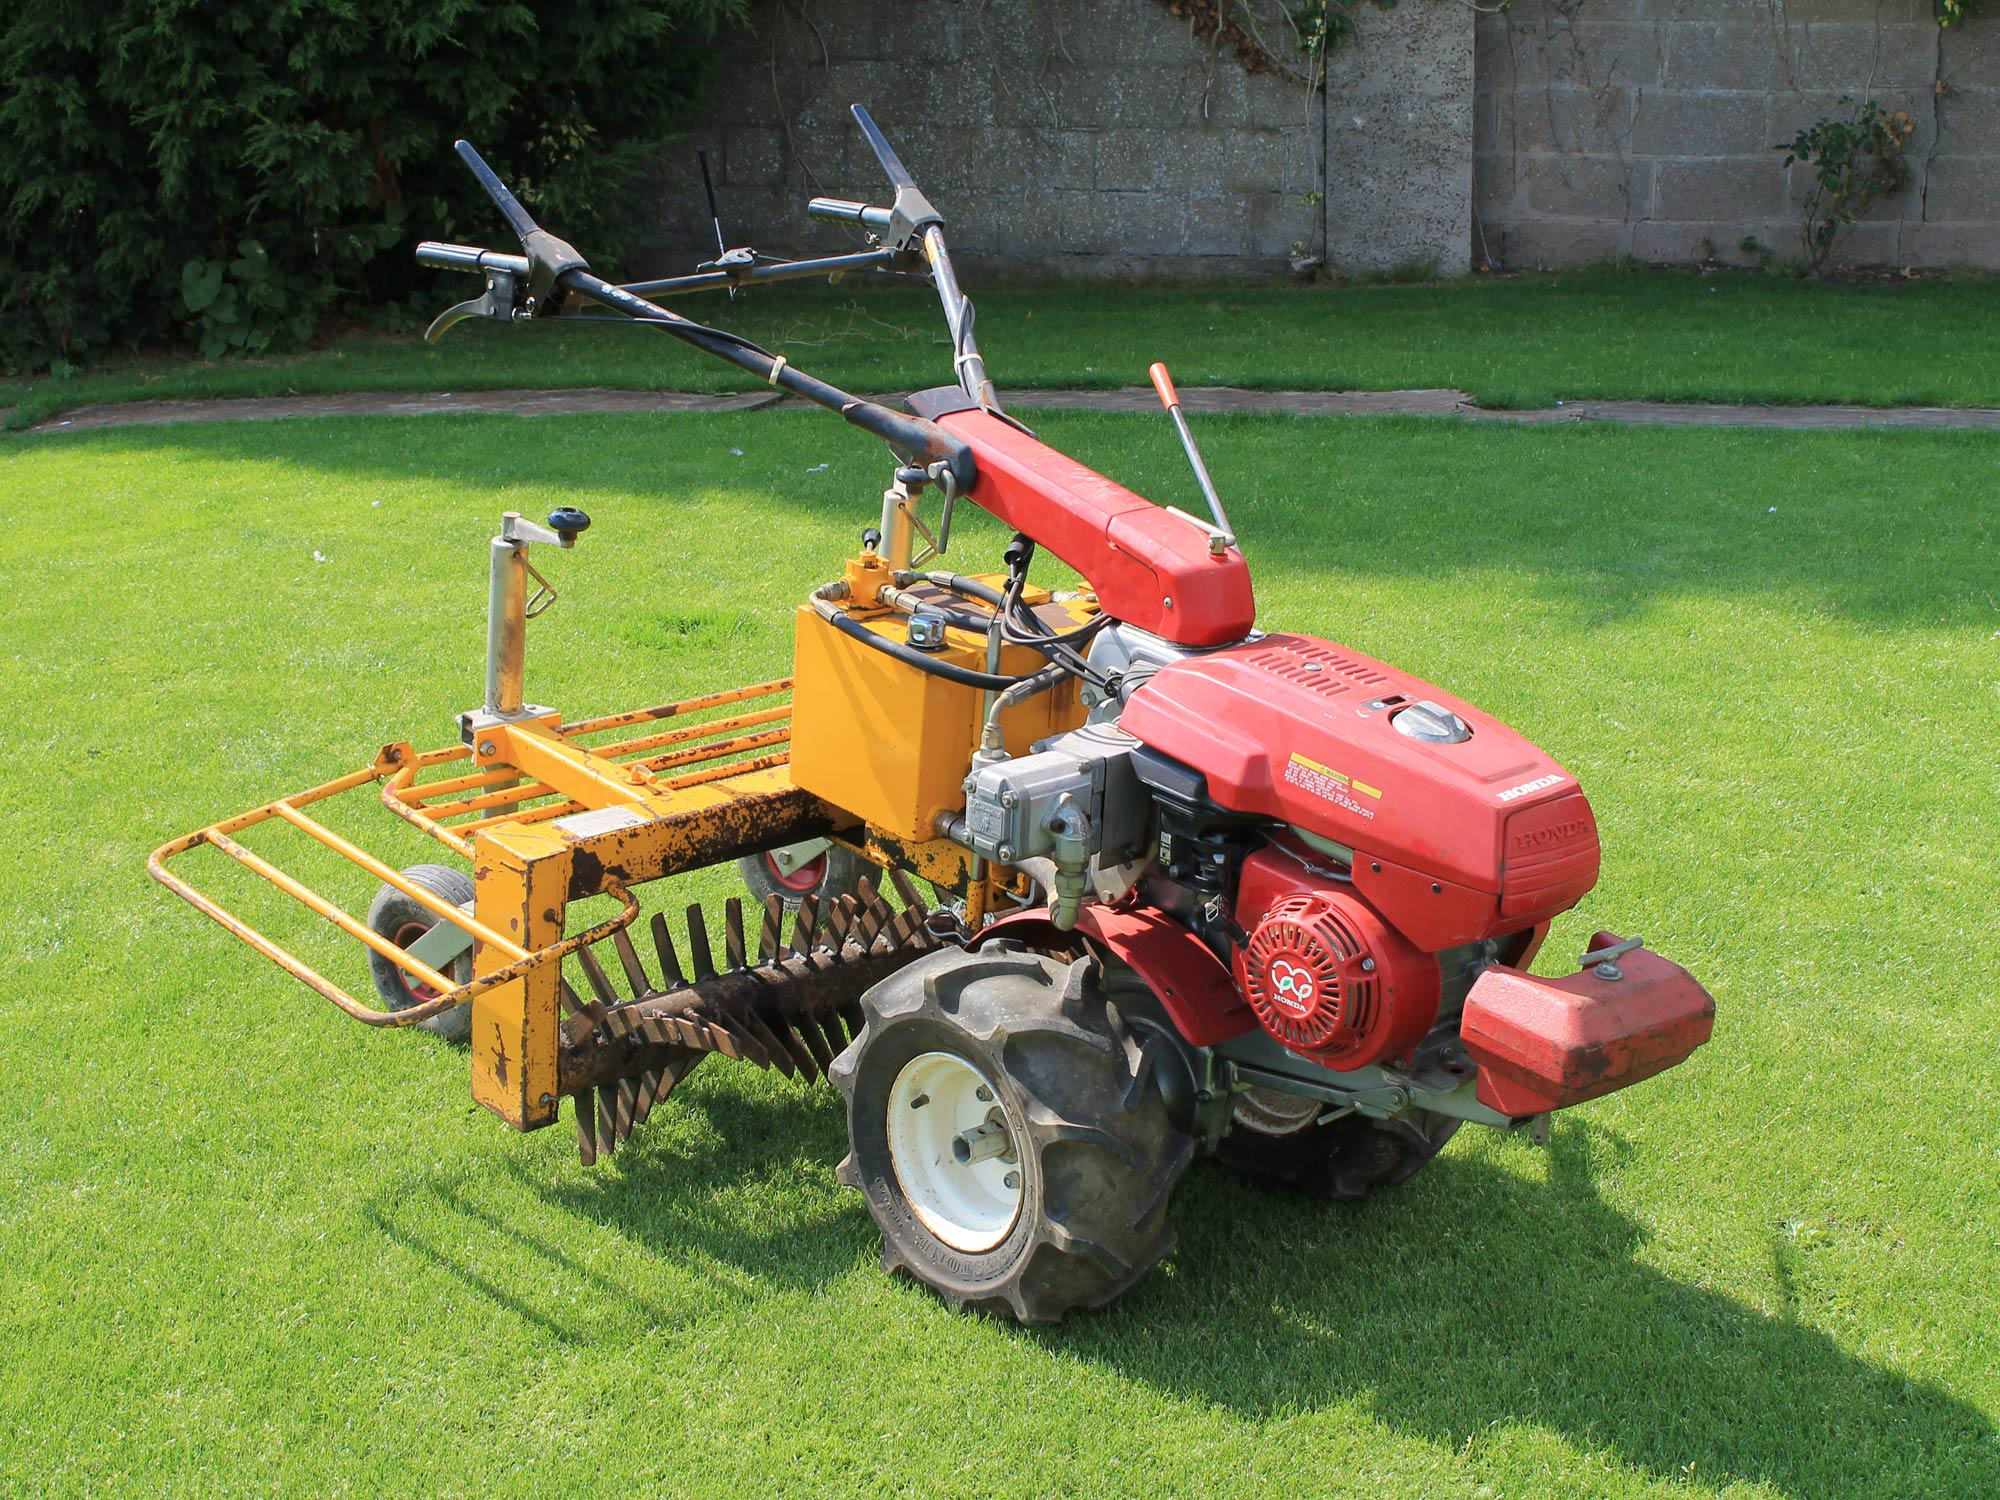 Procore 648 09200 additionally Toro Timemaster Tm 76cm 30 Cutting Deck moreover Toro Zero Turn Wiring Diagram as well Blec Cultipack Seeder Hire as well Ultraglide. on toro rotary mowers